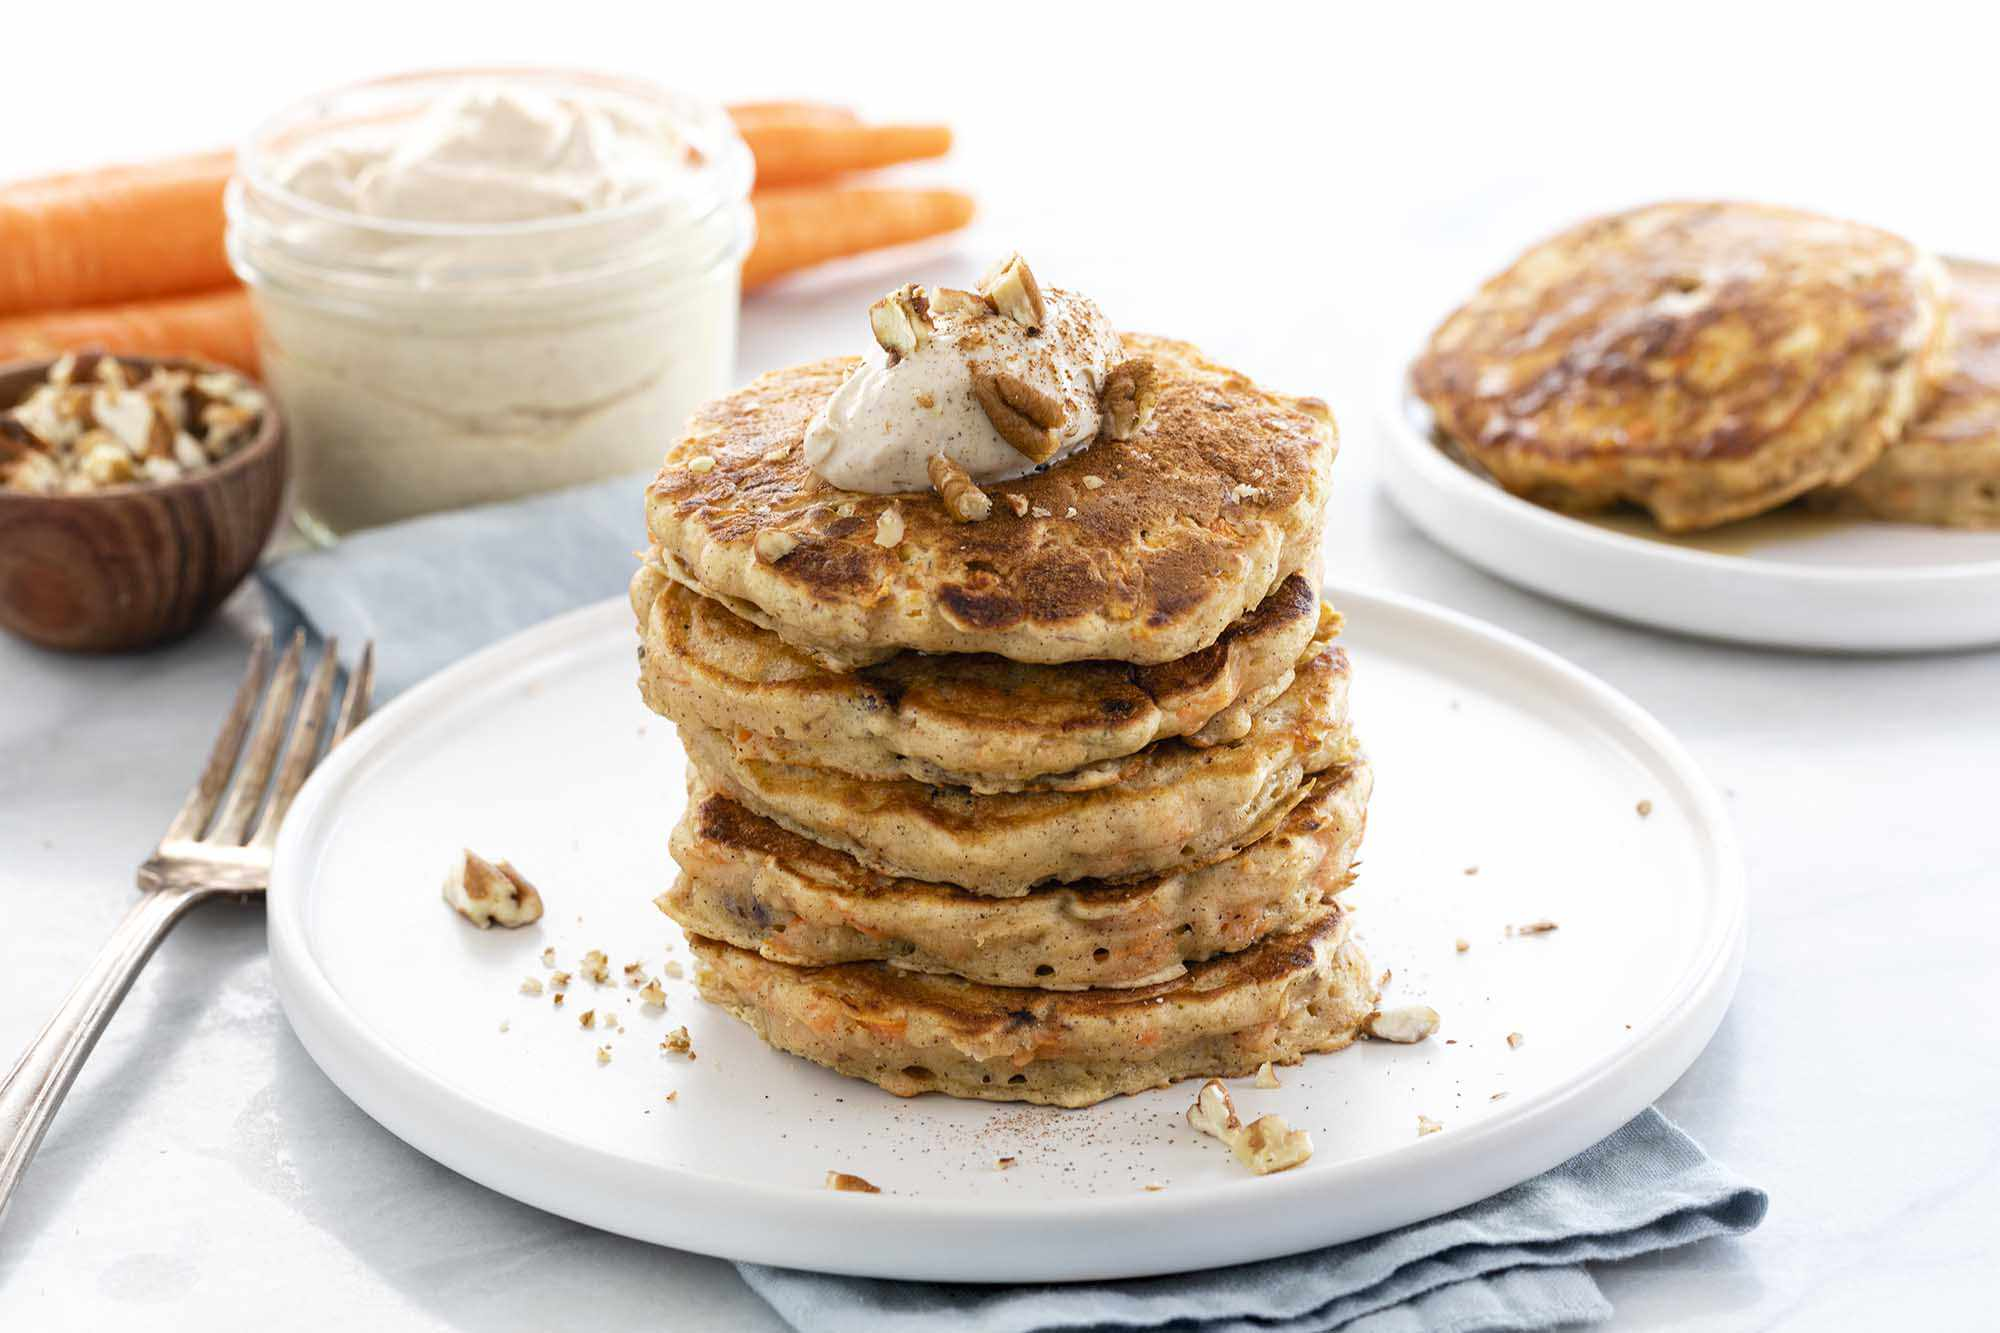 A tall stack of easy carrot cake pancakes on a white plate with chopped pecans and cream cheese topping. A linen is under the plate and a fork is to the left of the plate. Whole carrots, a container of cream cheese topping and a bowl of chopped pecans is to the upper left of the photo. A second plate of pancakes is in the upper right.